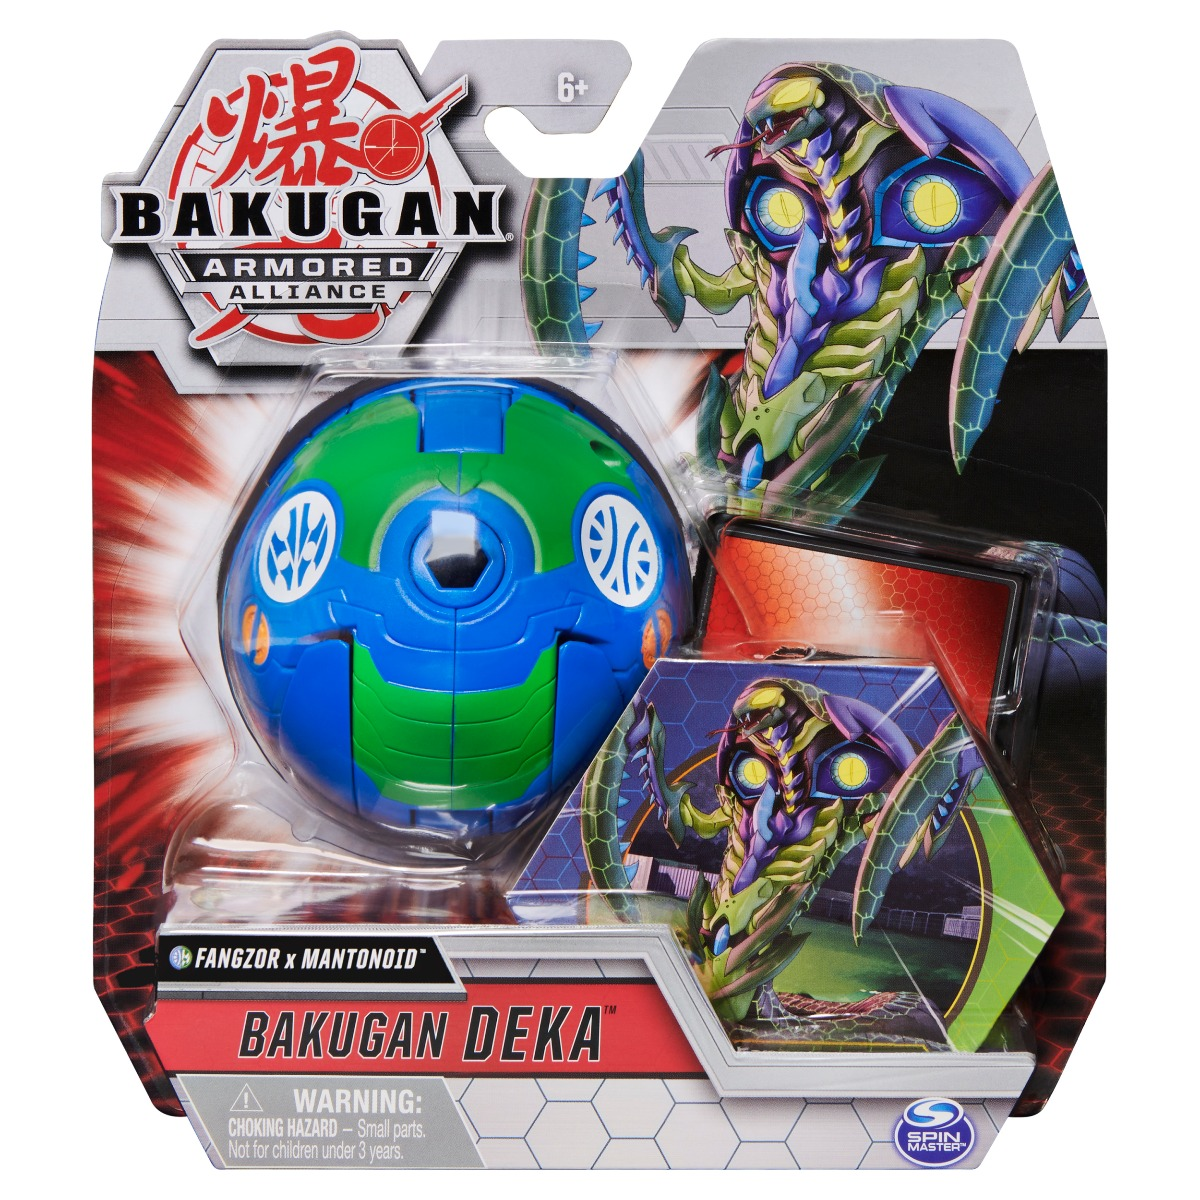 Figurina Bakugan Deka Armored Alliance, Fangzor x Mantonoid, 20125930